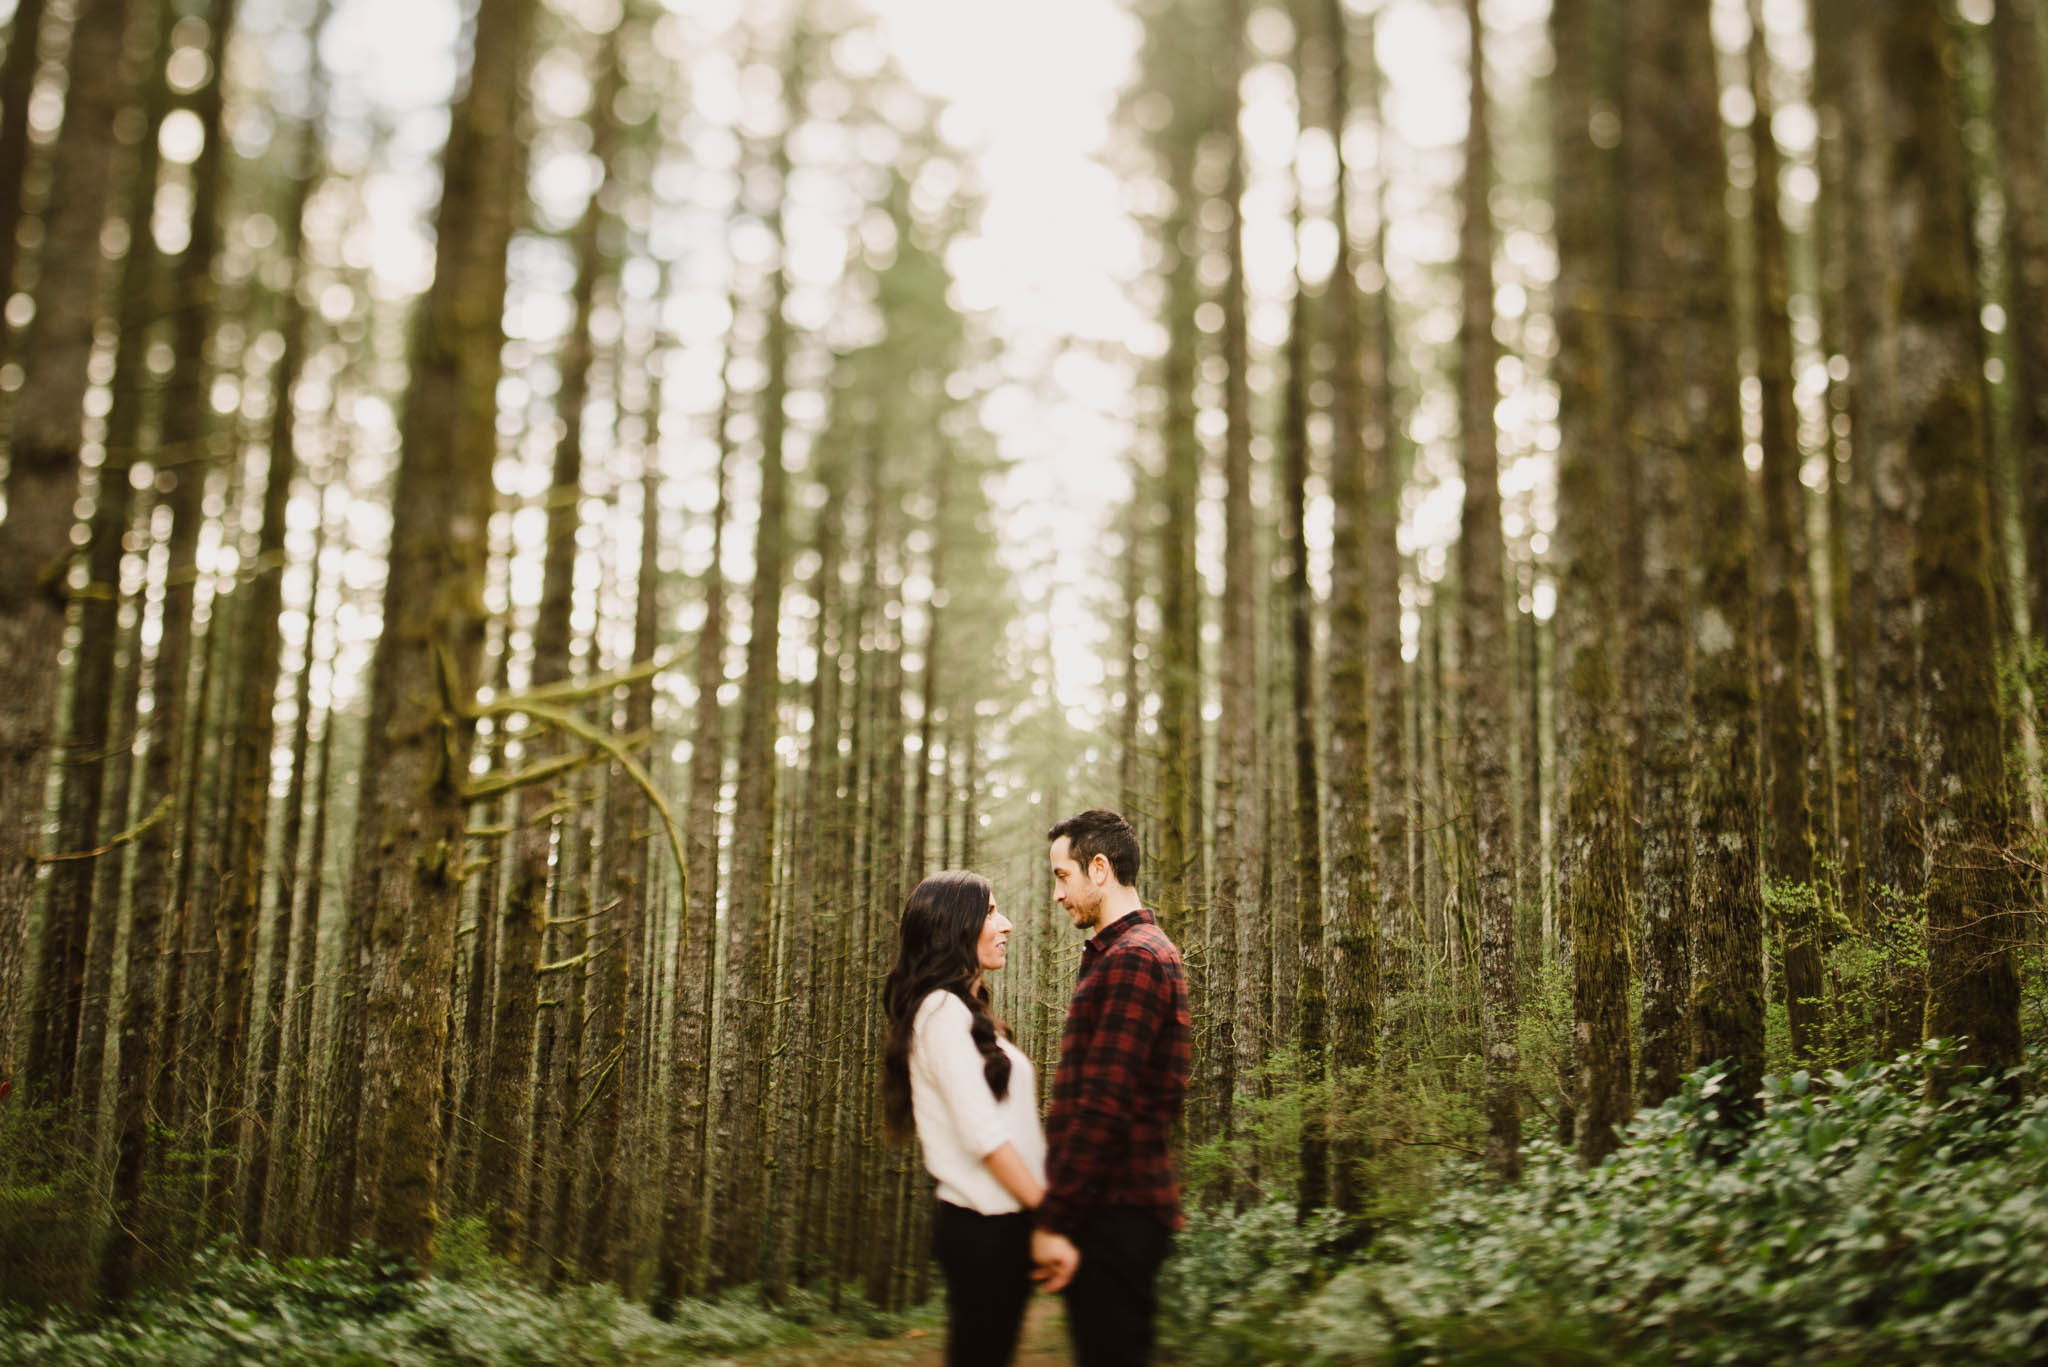 ©Isaiah-&-Taylor-Photography---Rattlesnake-Ledge-Trail-Engagement,-Seattle-Washington-007.jpg